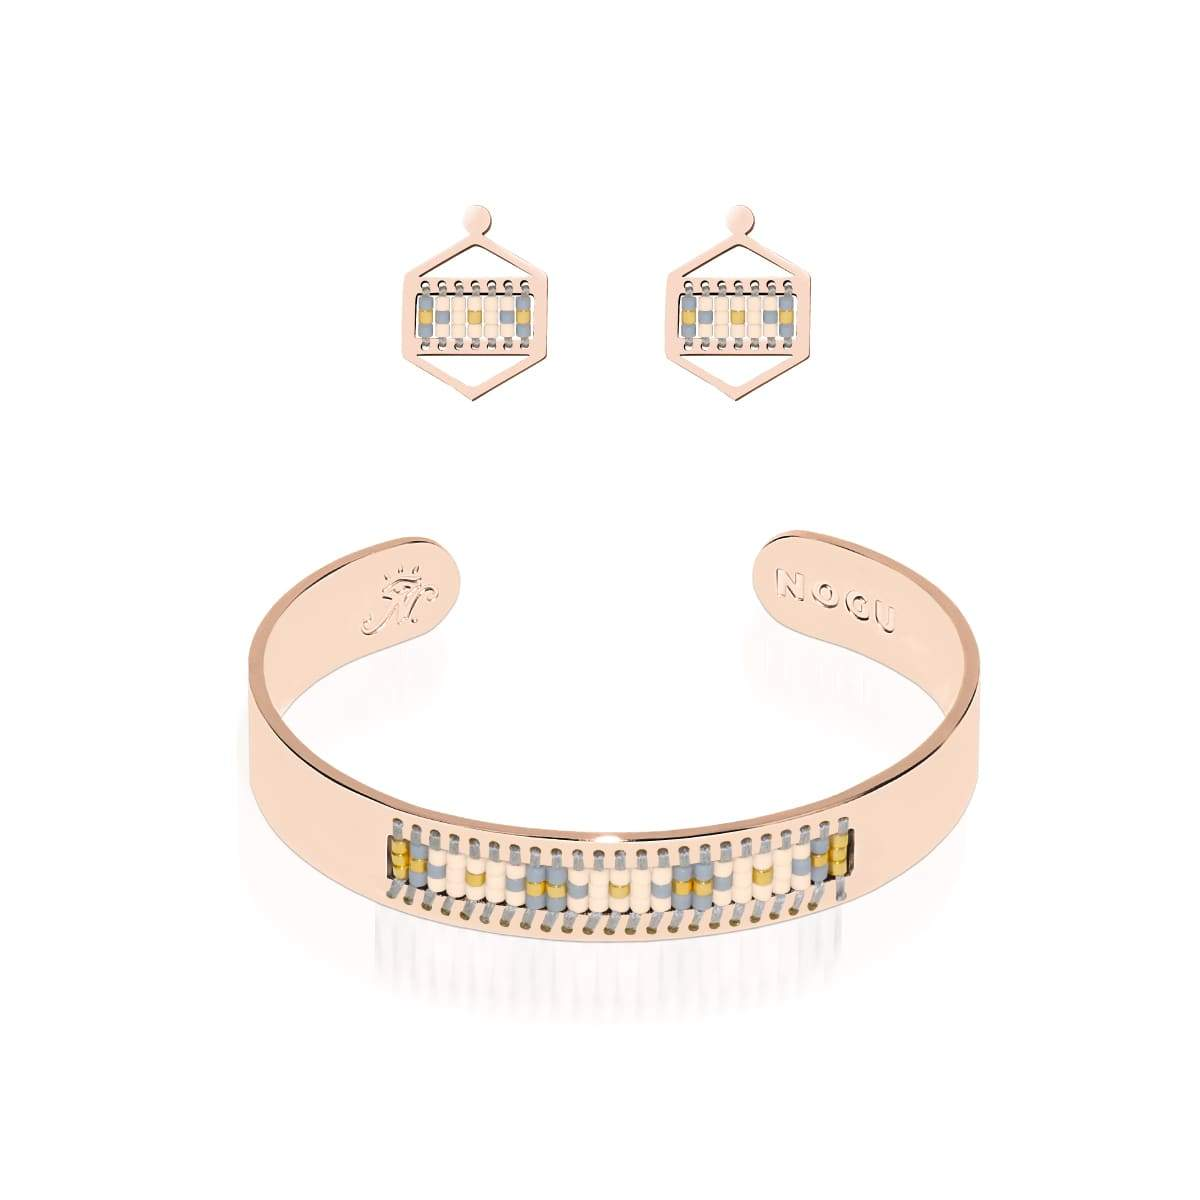 Monterey | Or rose 18 carats | Ensemble de boucles d'oreilles Boho Bangle